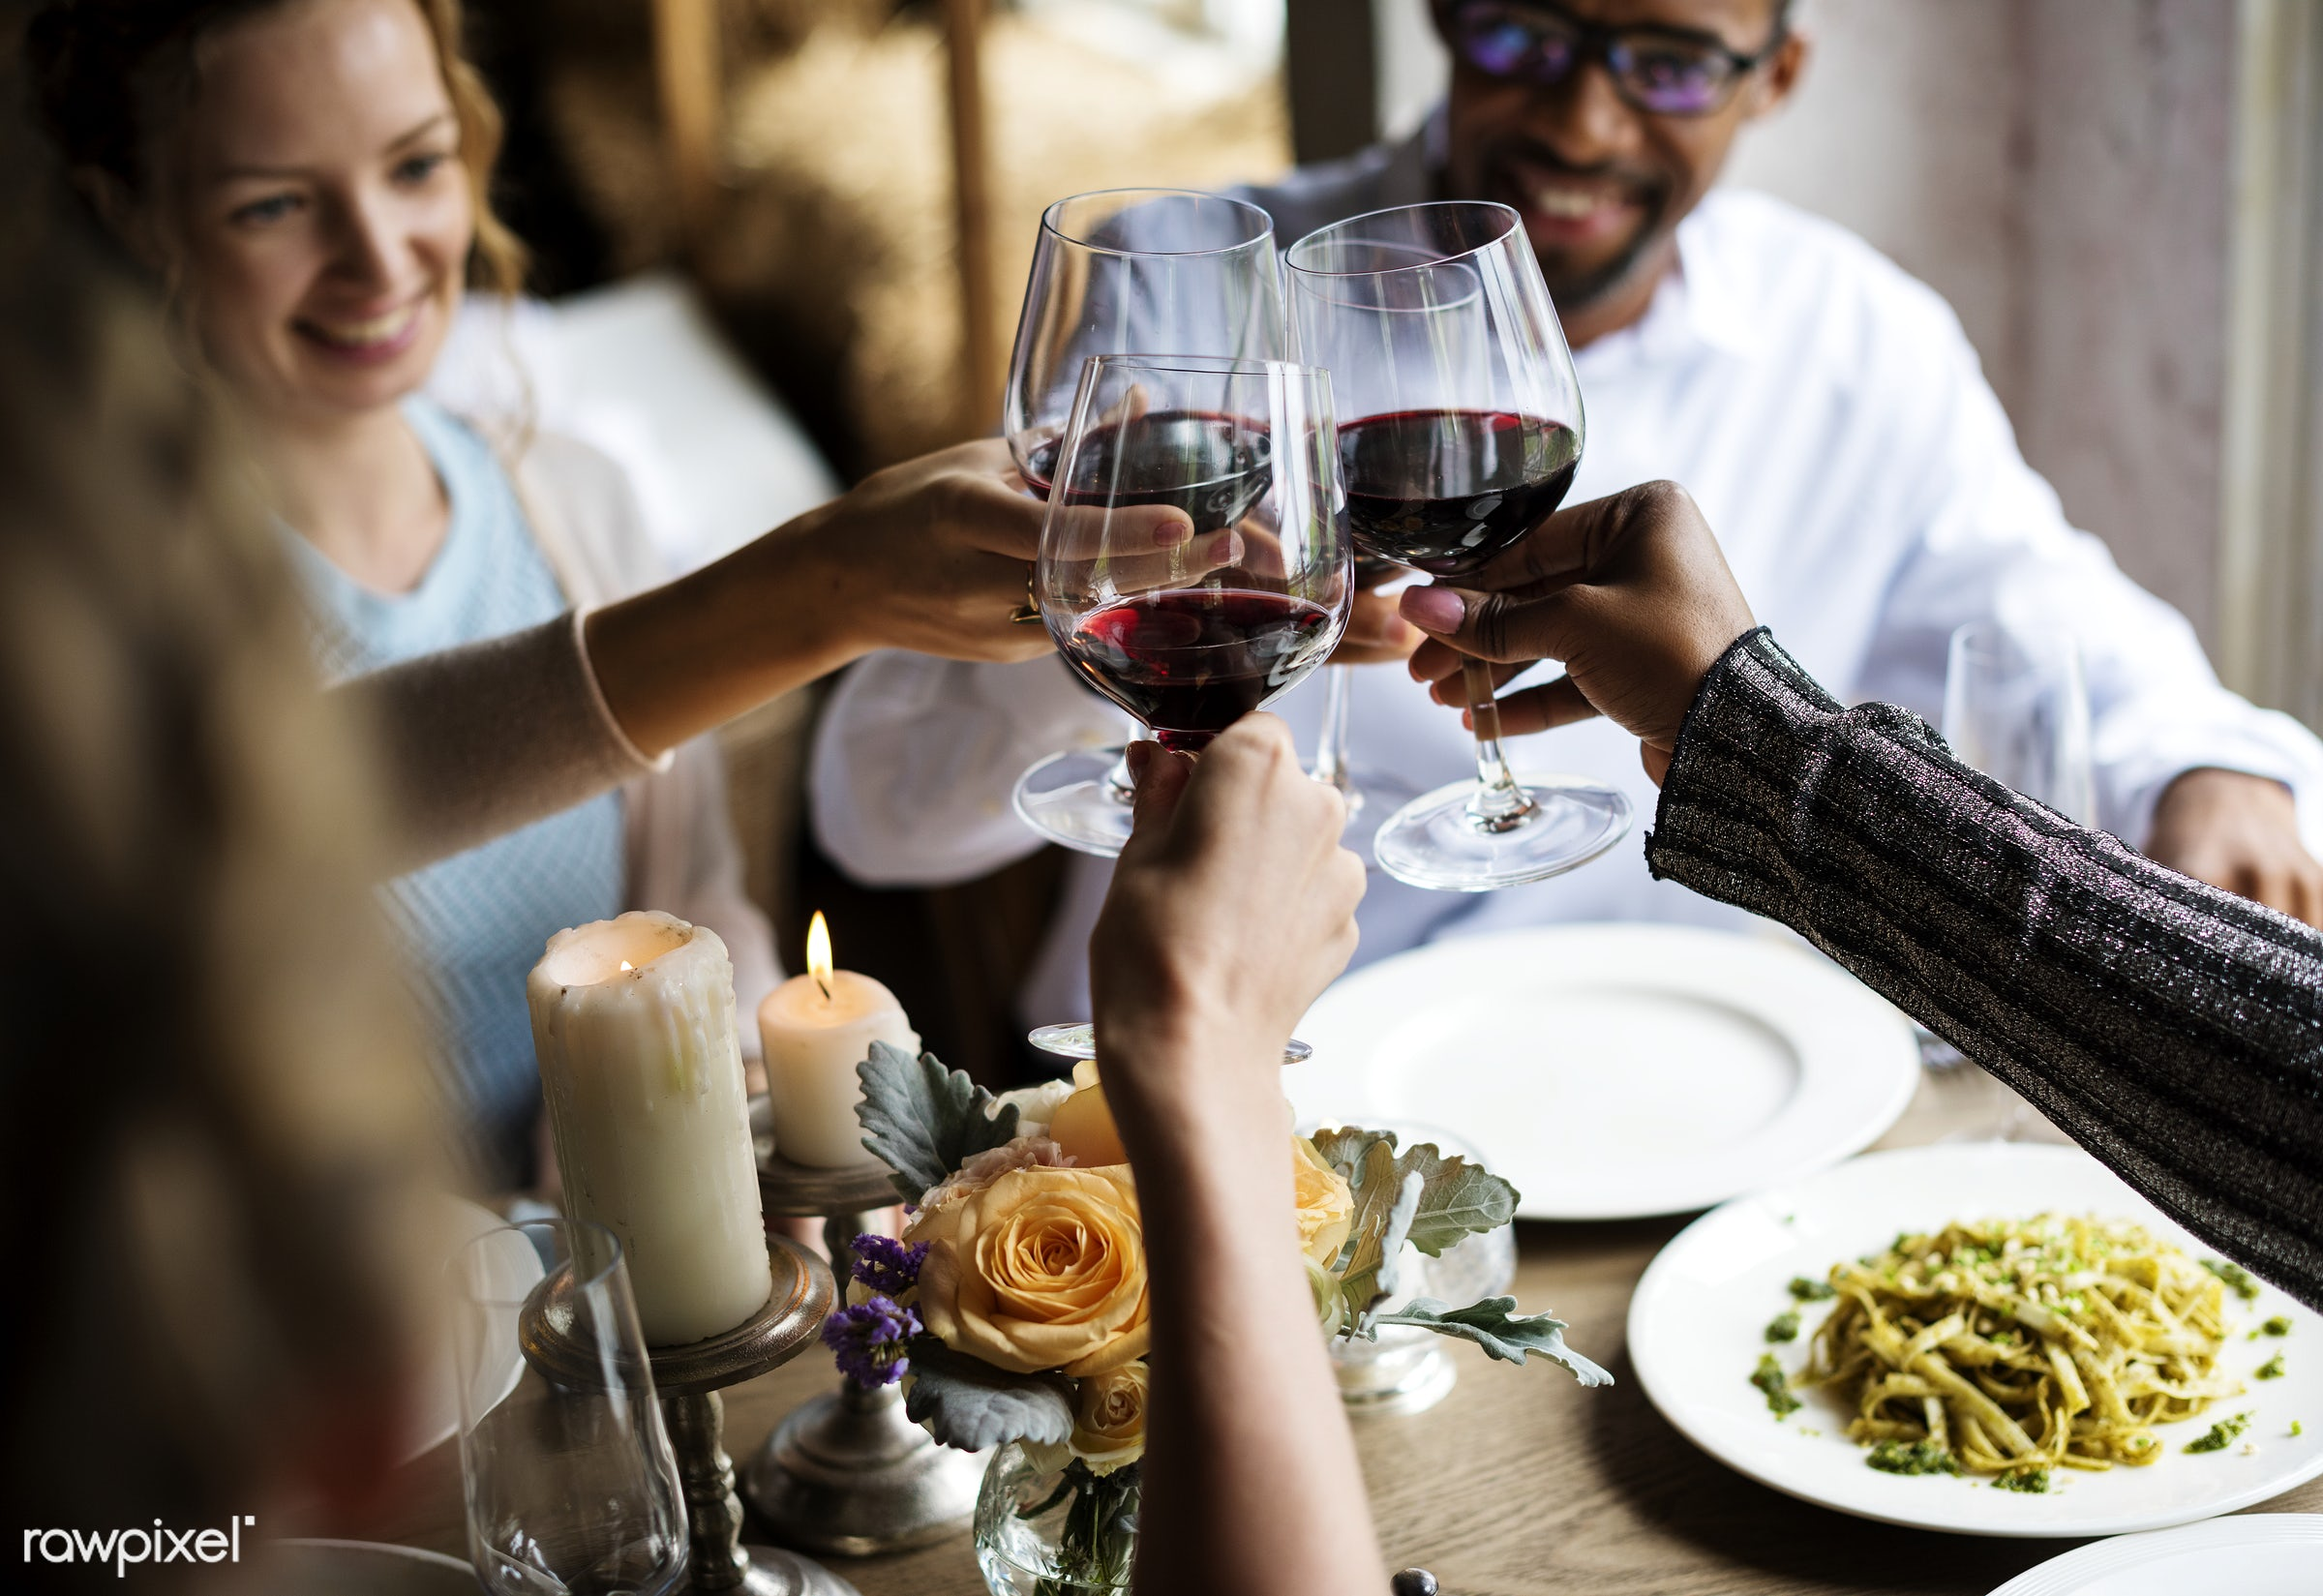 expression, person, cuisine, restaurant, people, dished, together, caucasian, friends, gather, woman, candles, drink, glass...